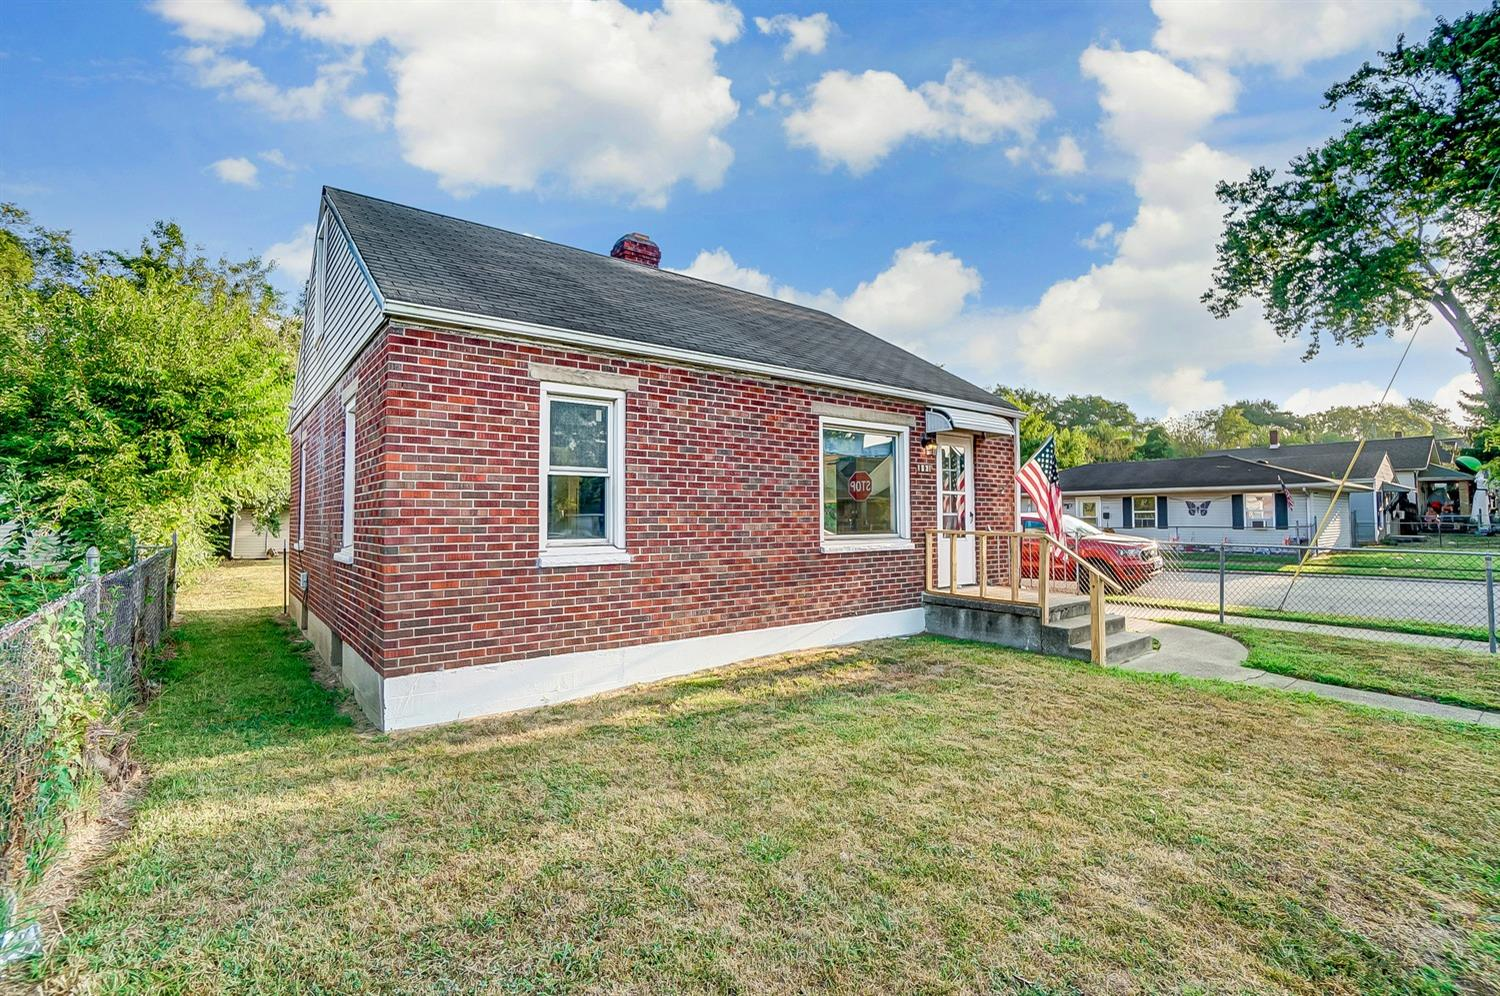 Photo 3 for 1631 Lawn Ave Middletown South, OH 45044